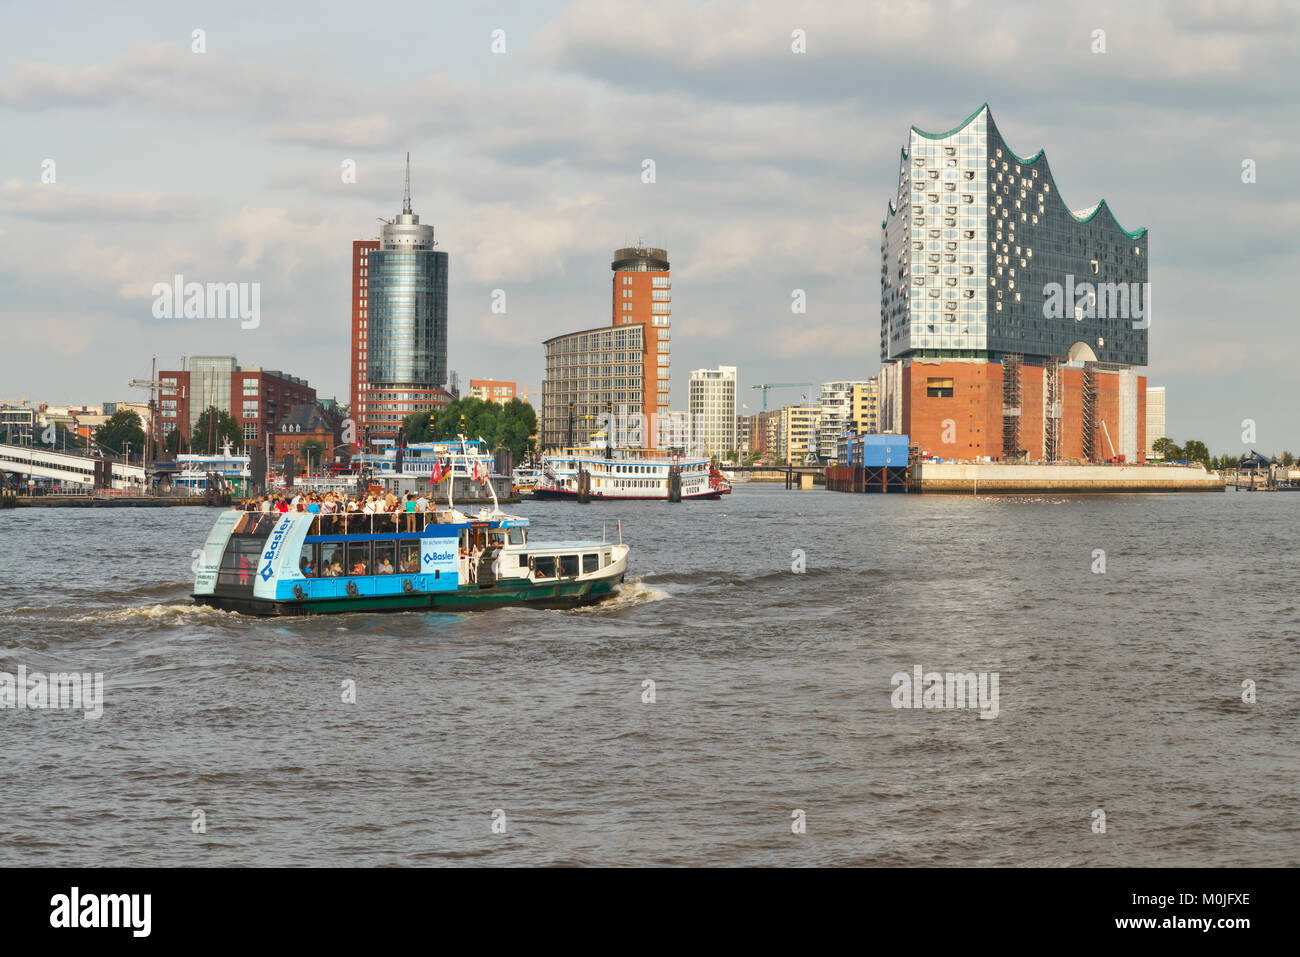 HANBURG, GERMANY- AUGUST 12, 2015: Boat with tourists goes on Elbe river towards Elbphilharmonie, a concert hall - Stock Image